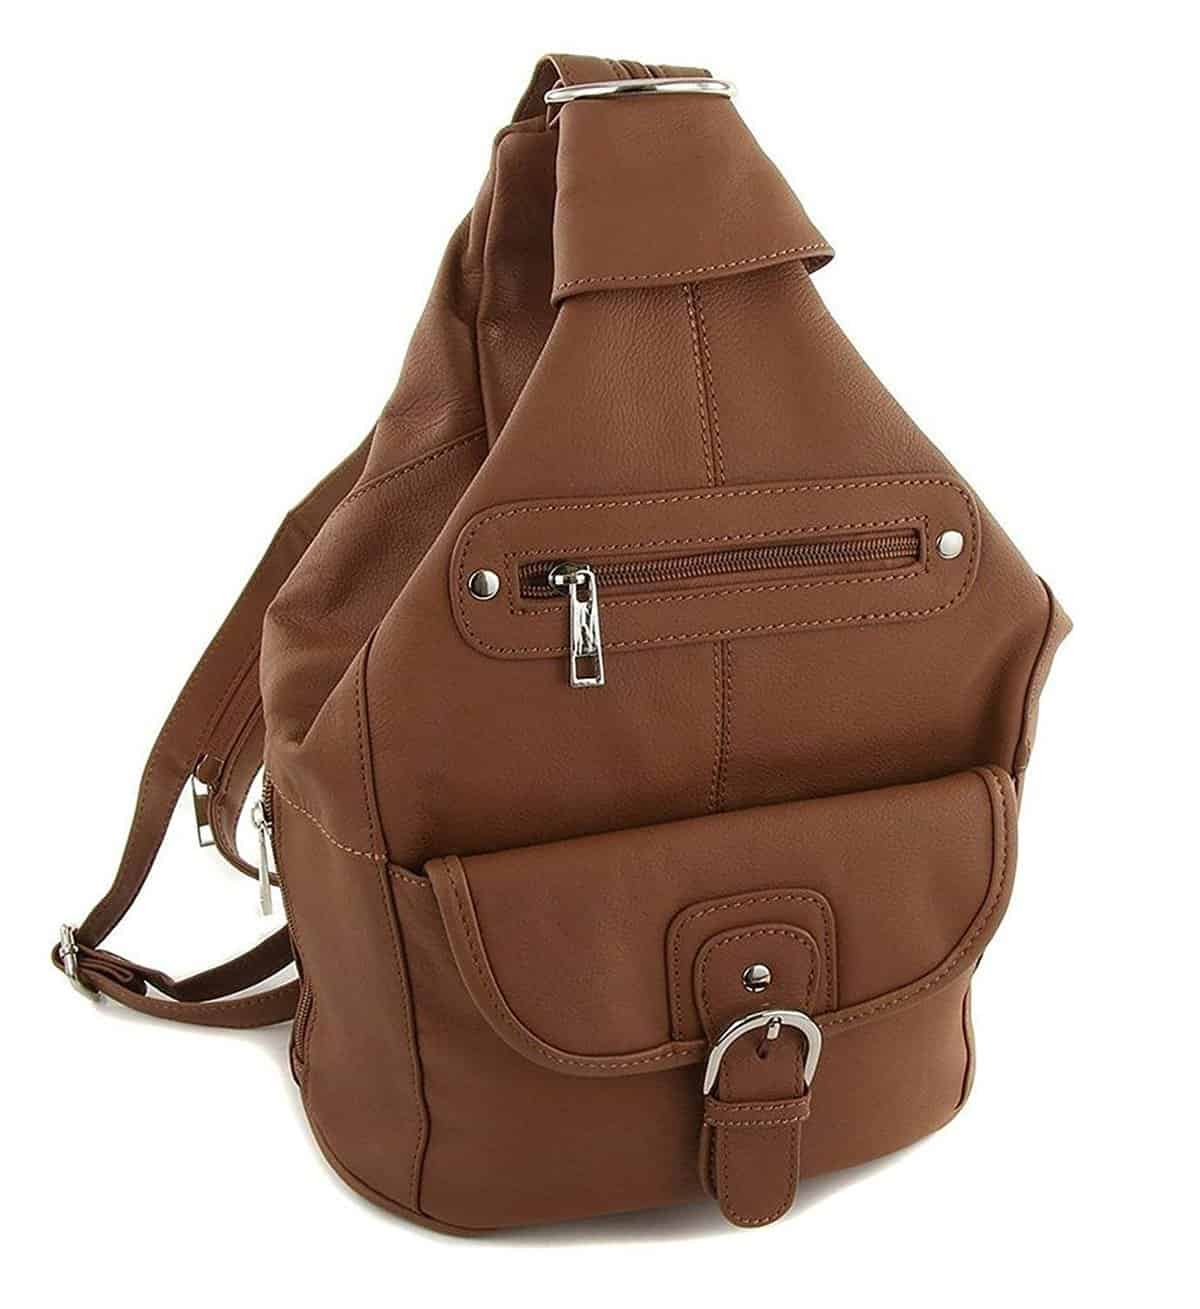 Roma Leathers Women's Leather Sling Bag